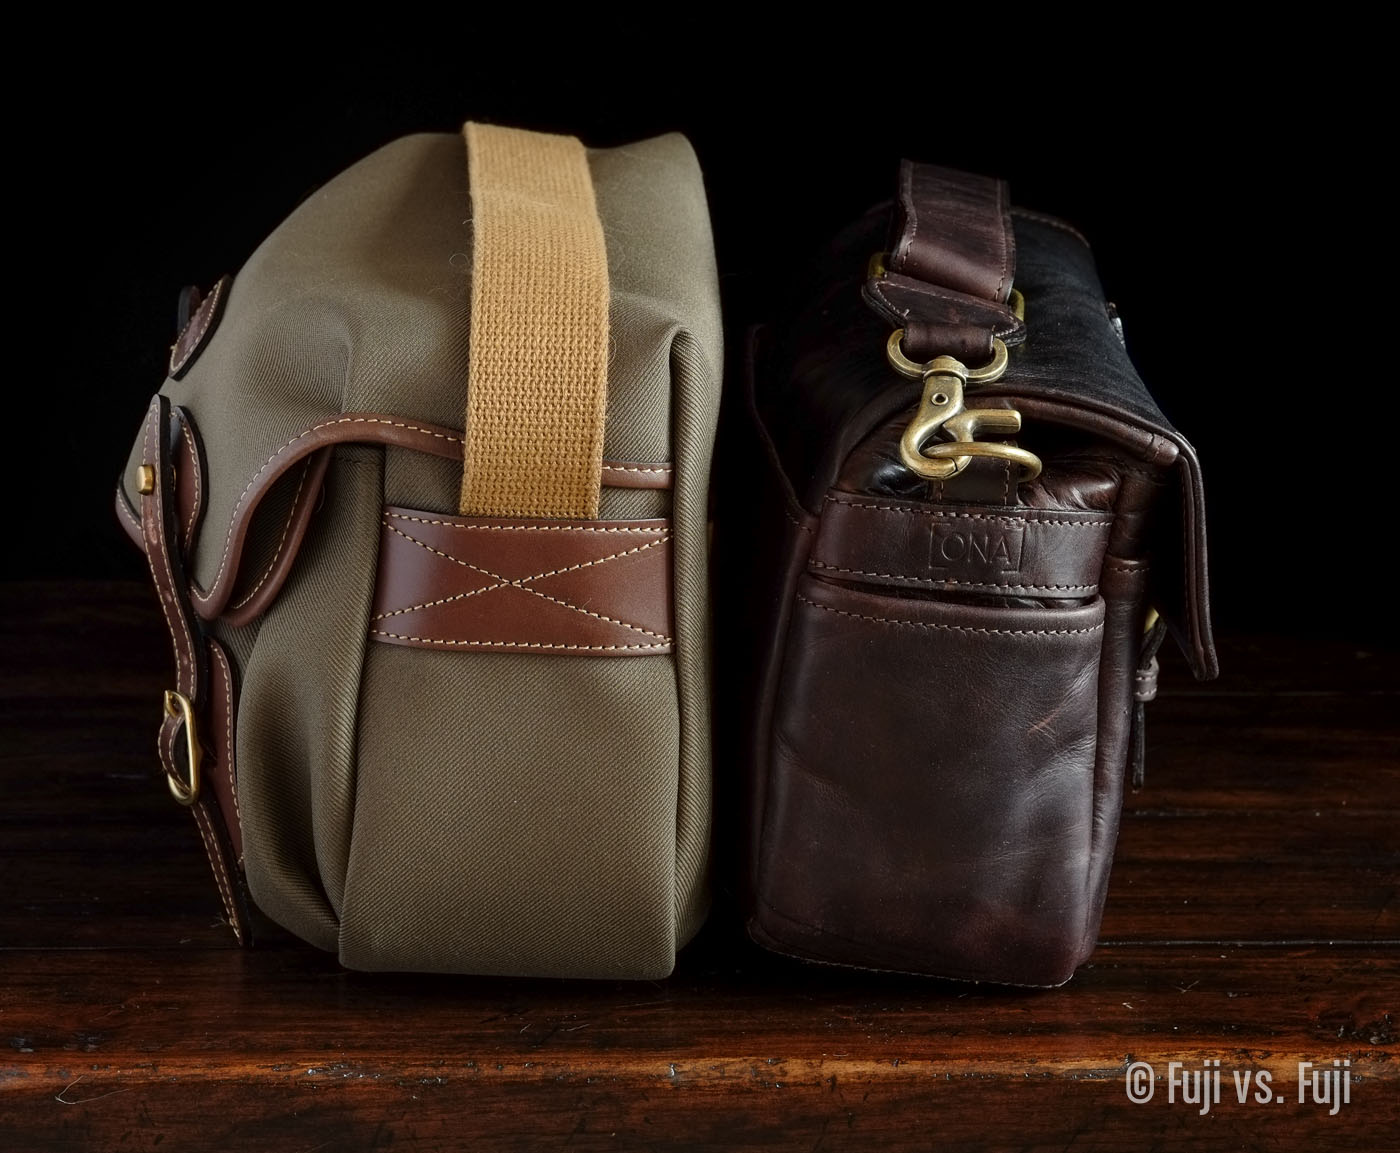 The Hadley small and the Bowery, back to back for scale